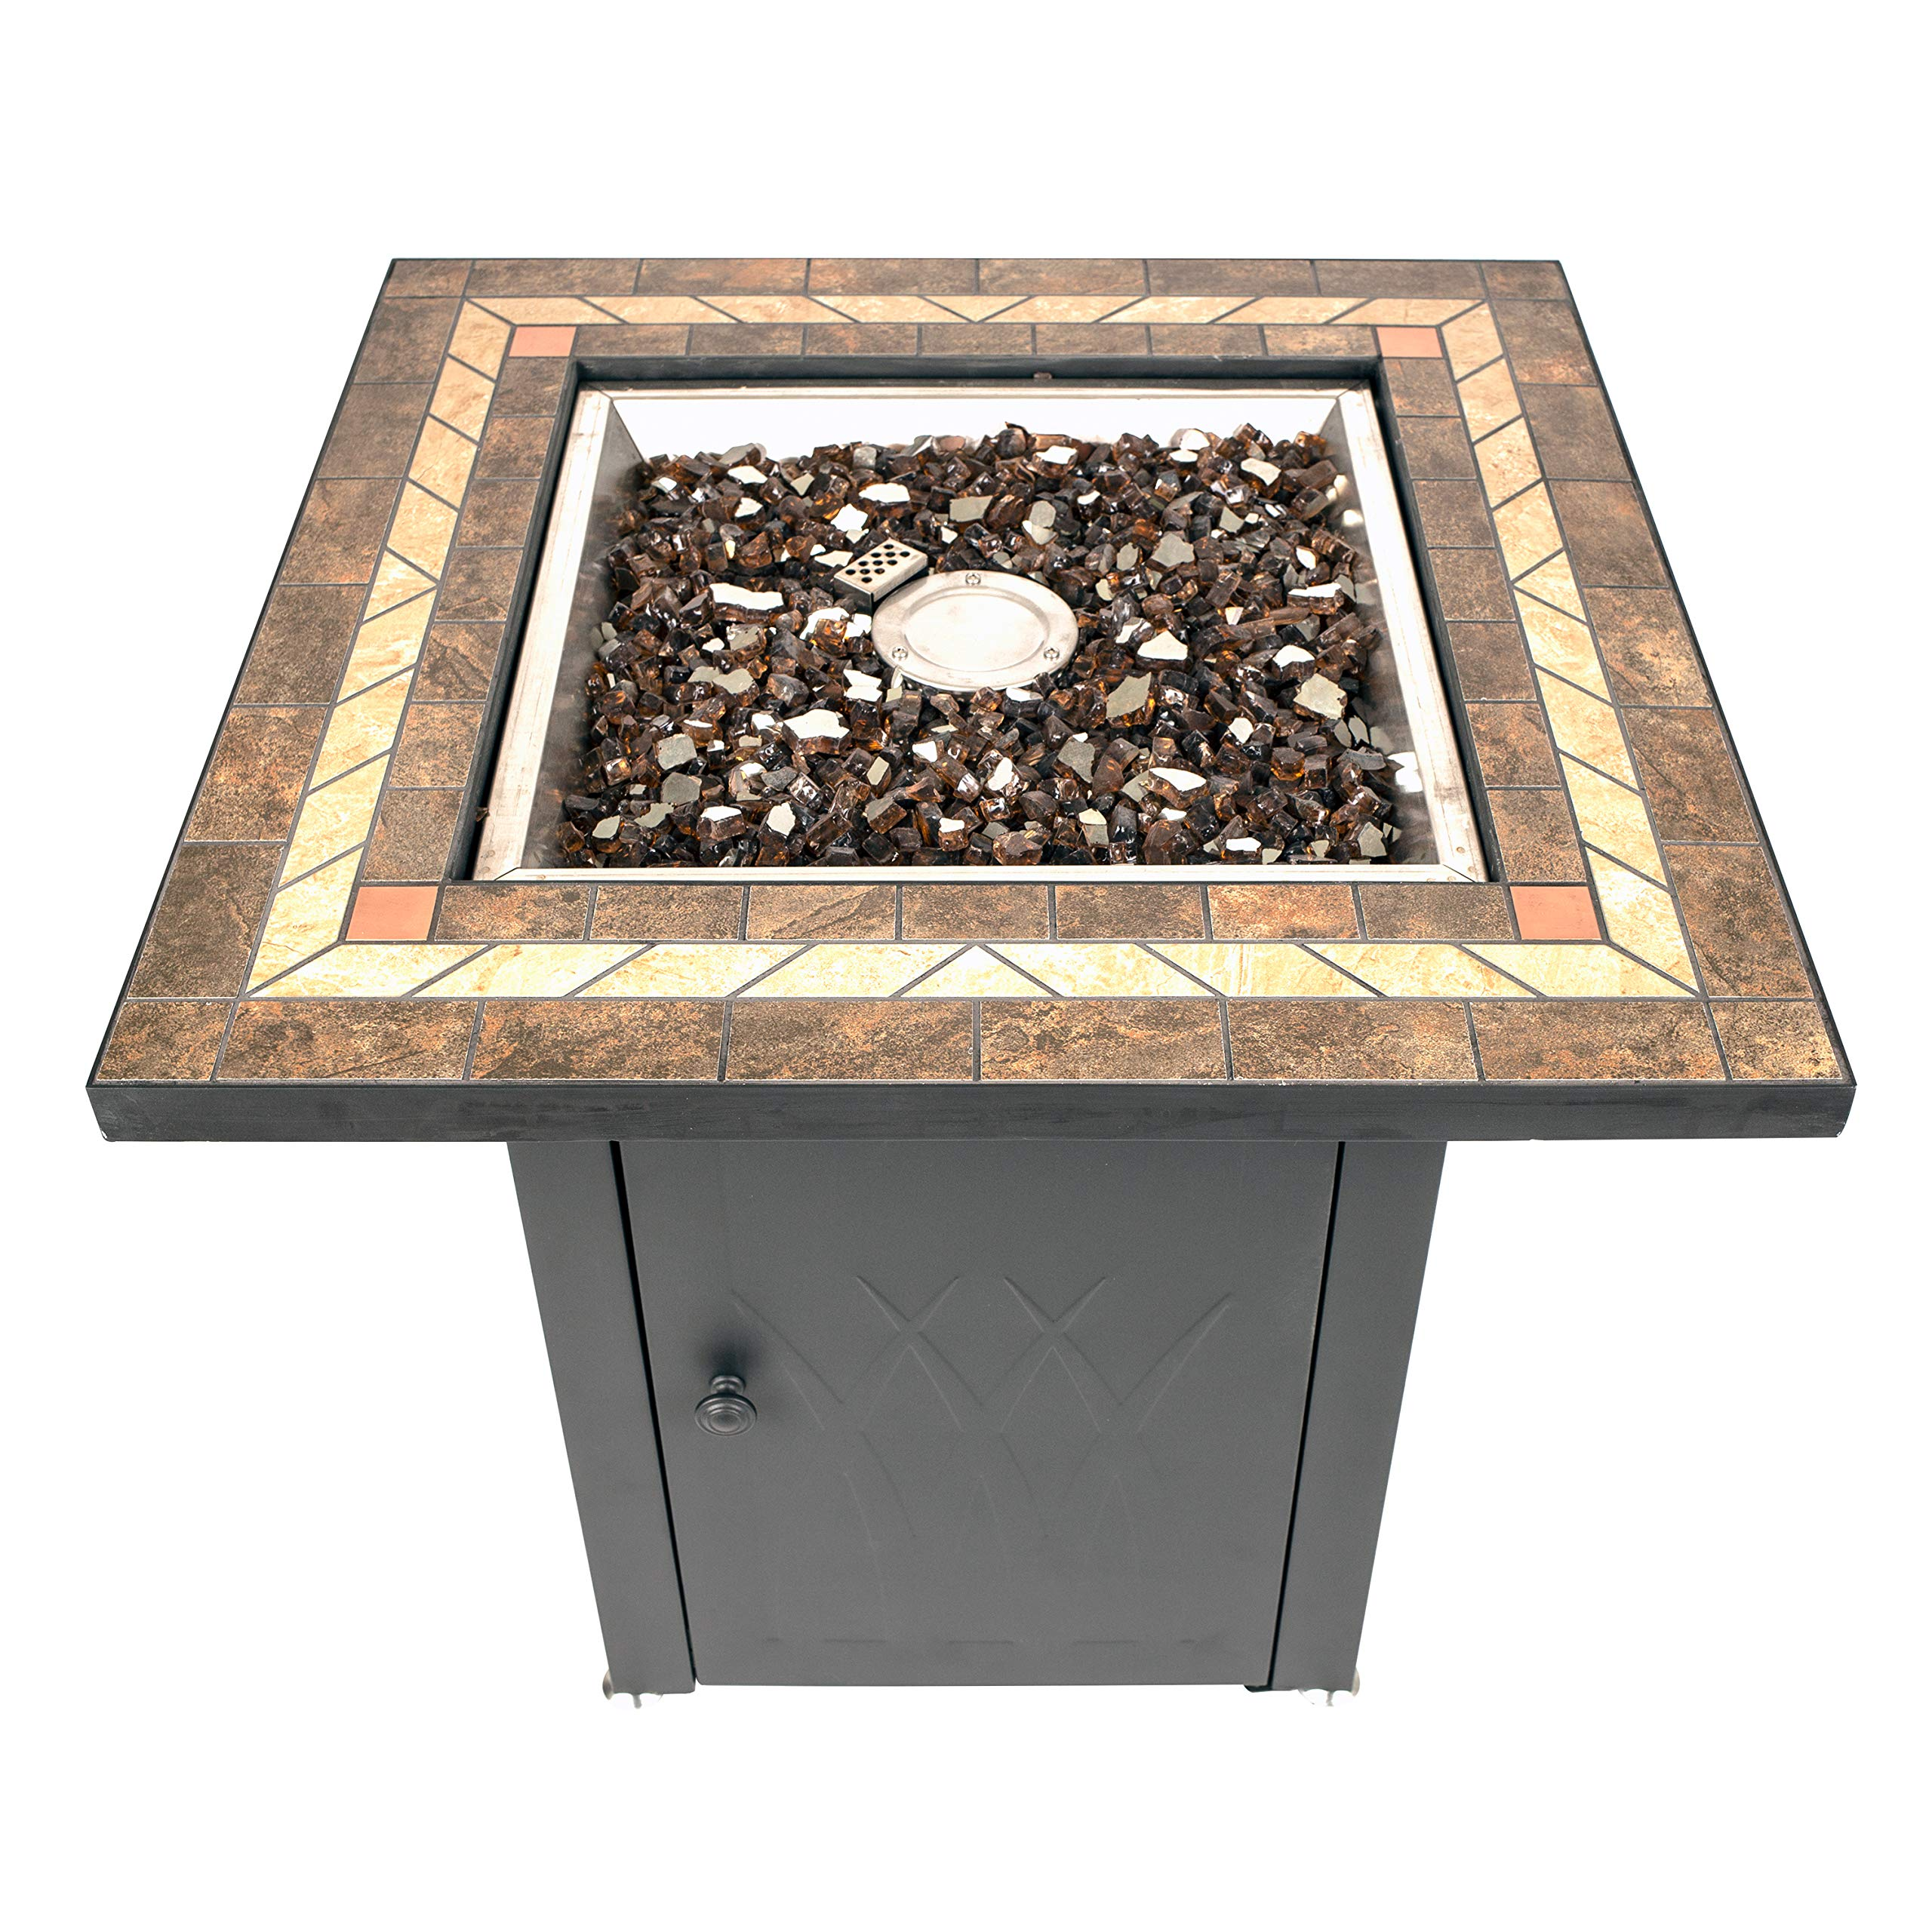 Pleasant Hearth OFG824T Atlantis Table Gas fire Pit, Matte Black/Tile Top by Pleasant Hearth